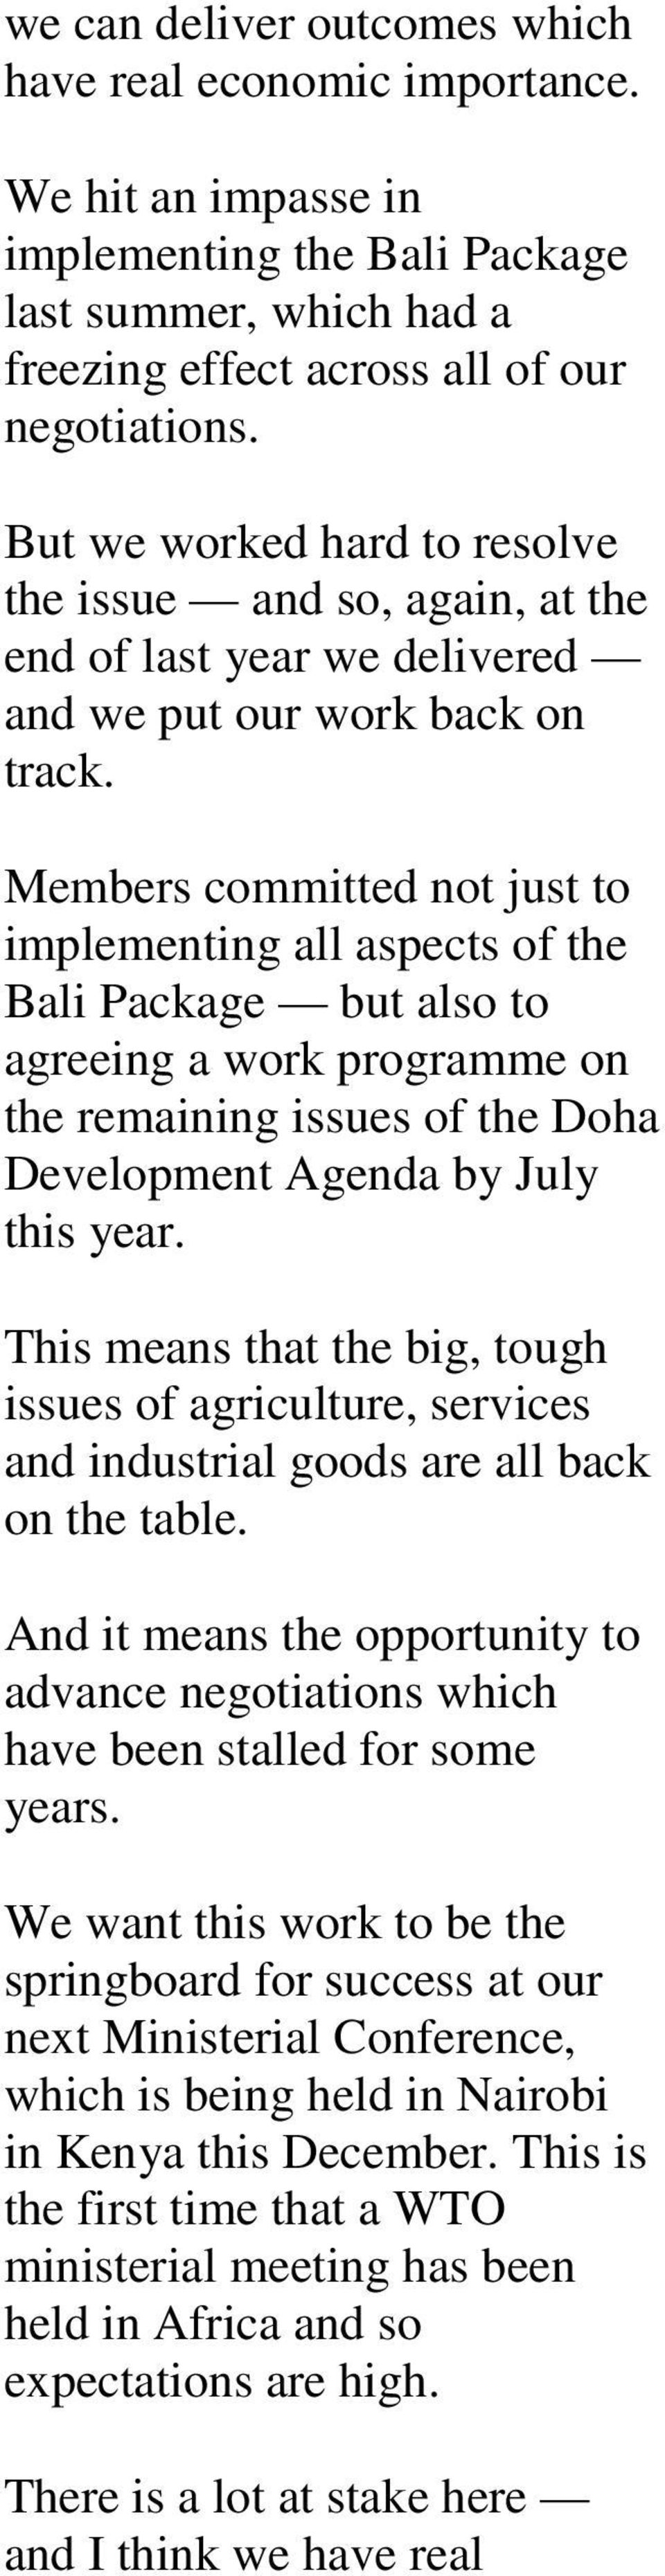 Members committed not just to implementing all aspects of the Bali Package but also to agreeing a work programme on the remaining issues of the Doha Development Agenda by July this year.